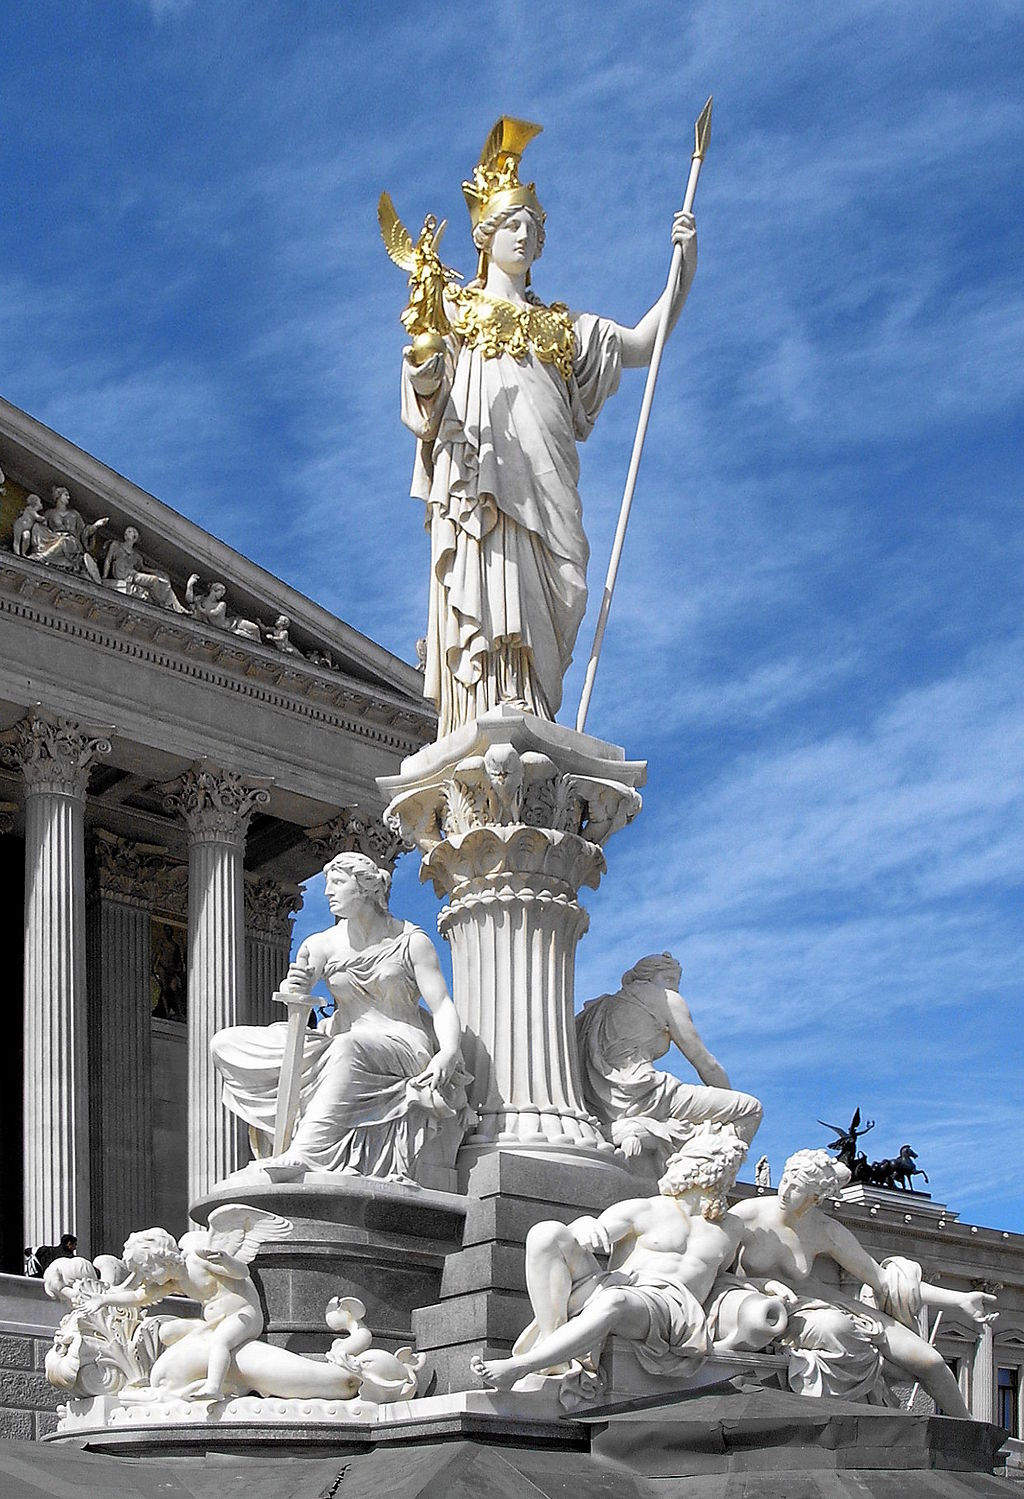 Statue of Pallas Athena in front of the Austrian Parliament Building. (Wikimedia)